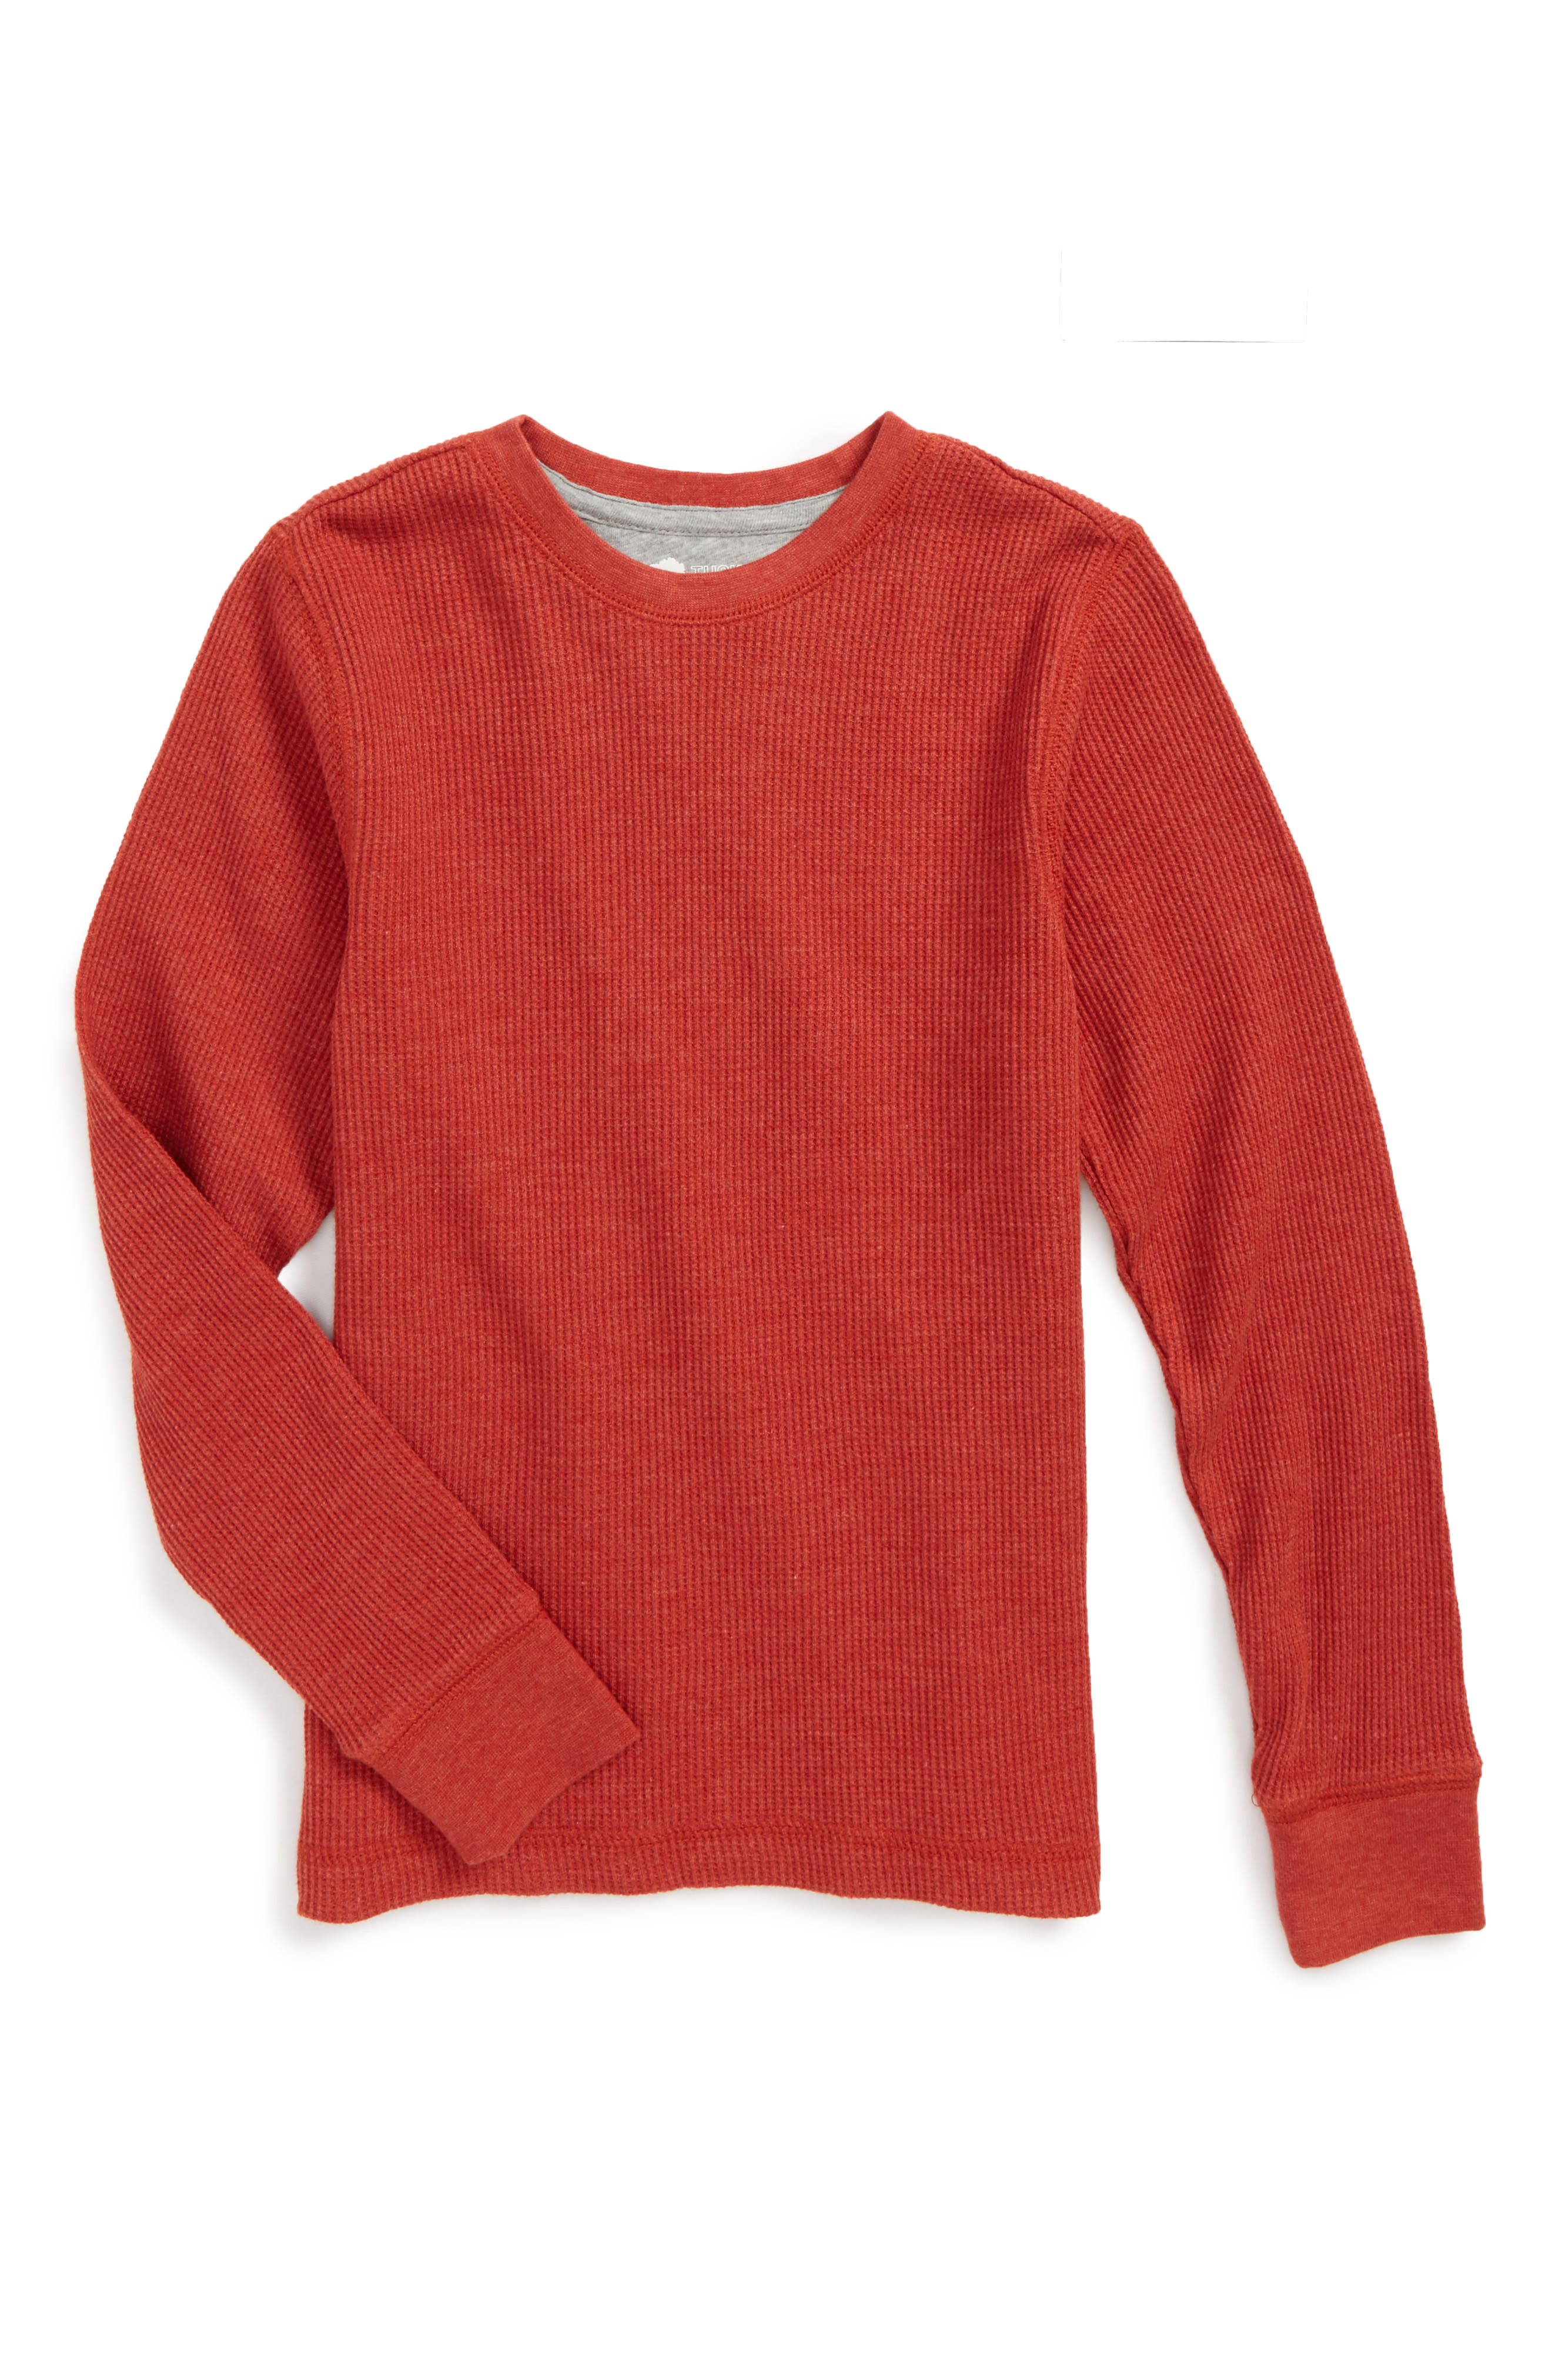 Tucker + Tate Long Sleeve Thermal T-Shirt (Toddler Boys & Little Boys)